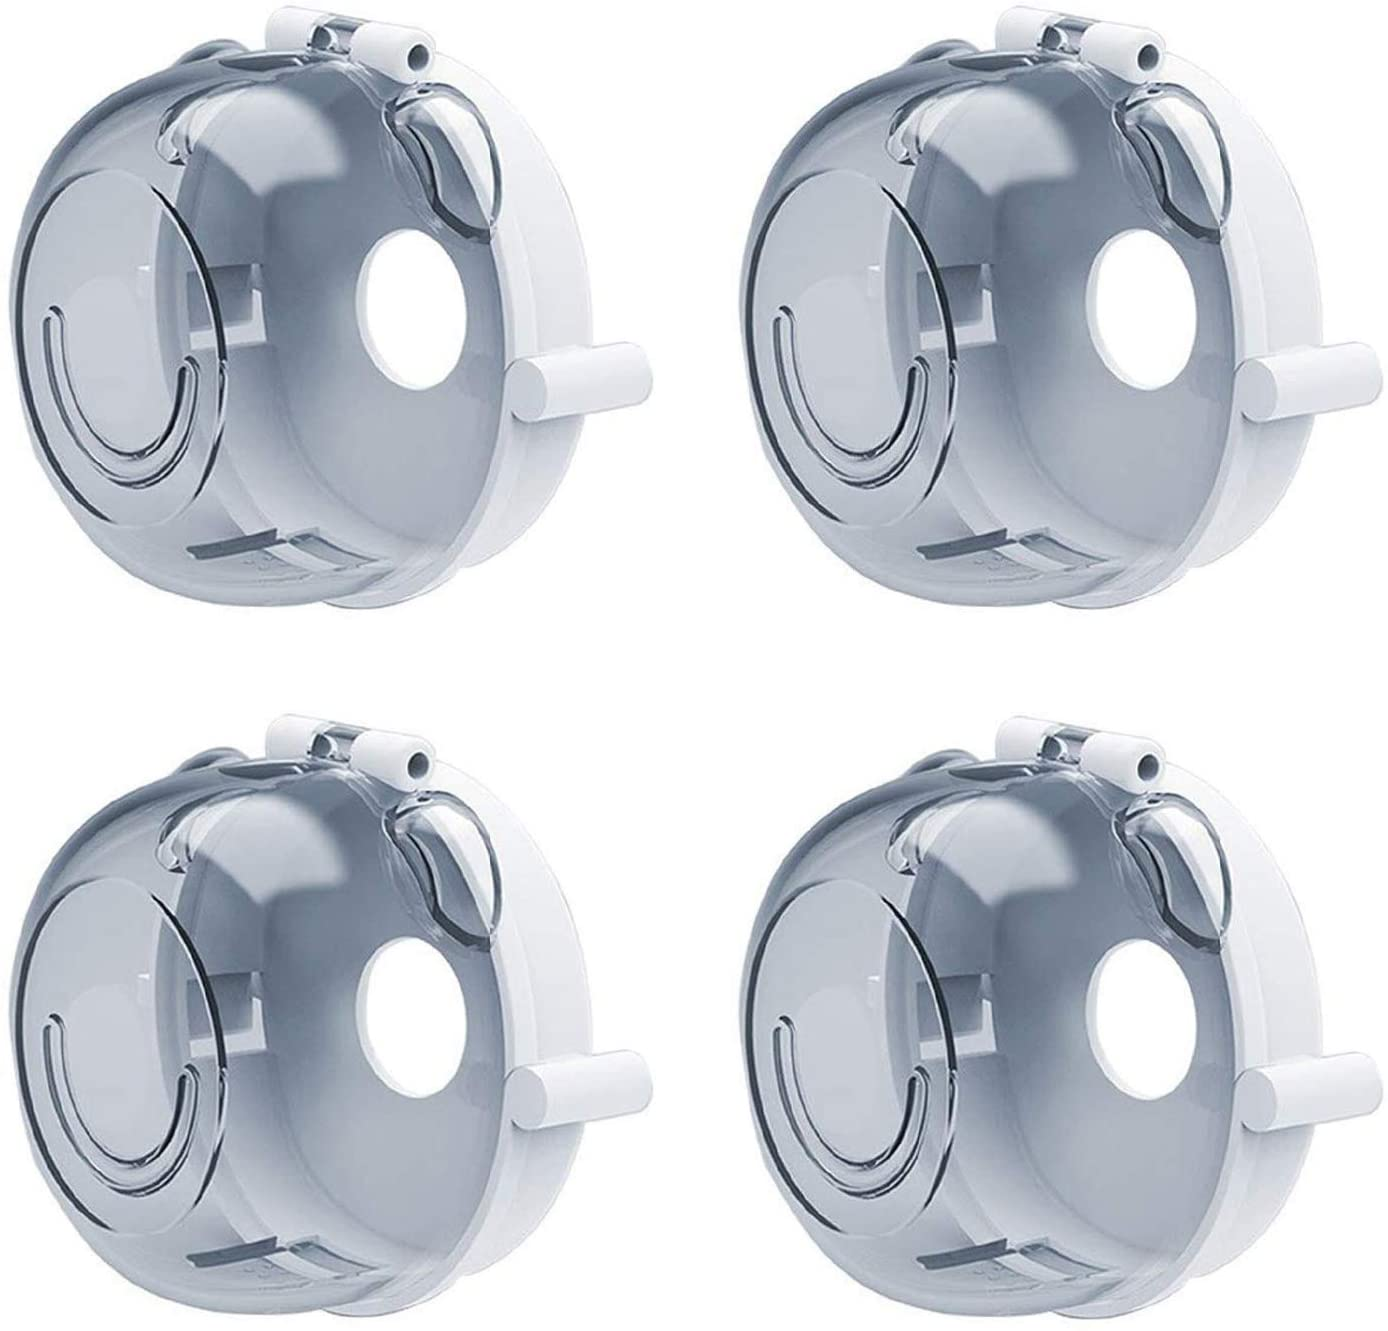 4pcs Stove Knob Covers, Baby Proof Kids Safety Oven Gas Large Universal Design Stove Knob Cap Protection Locks Pet Proofing for Child Switch Toddler Kitchen Baby Proof, Transparent